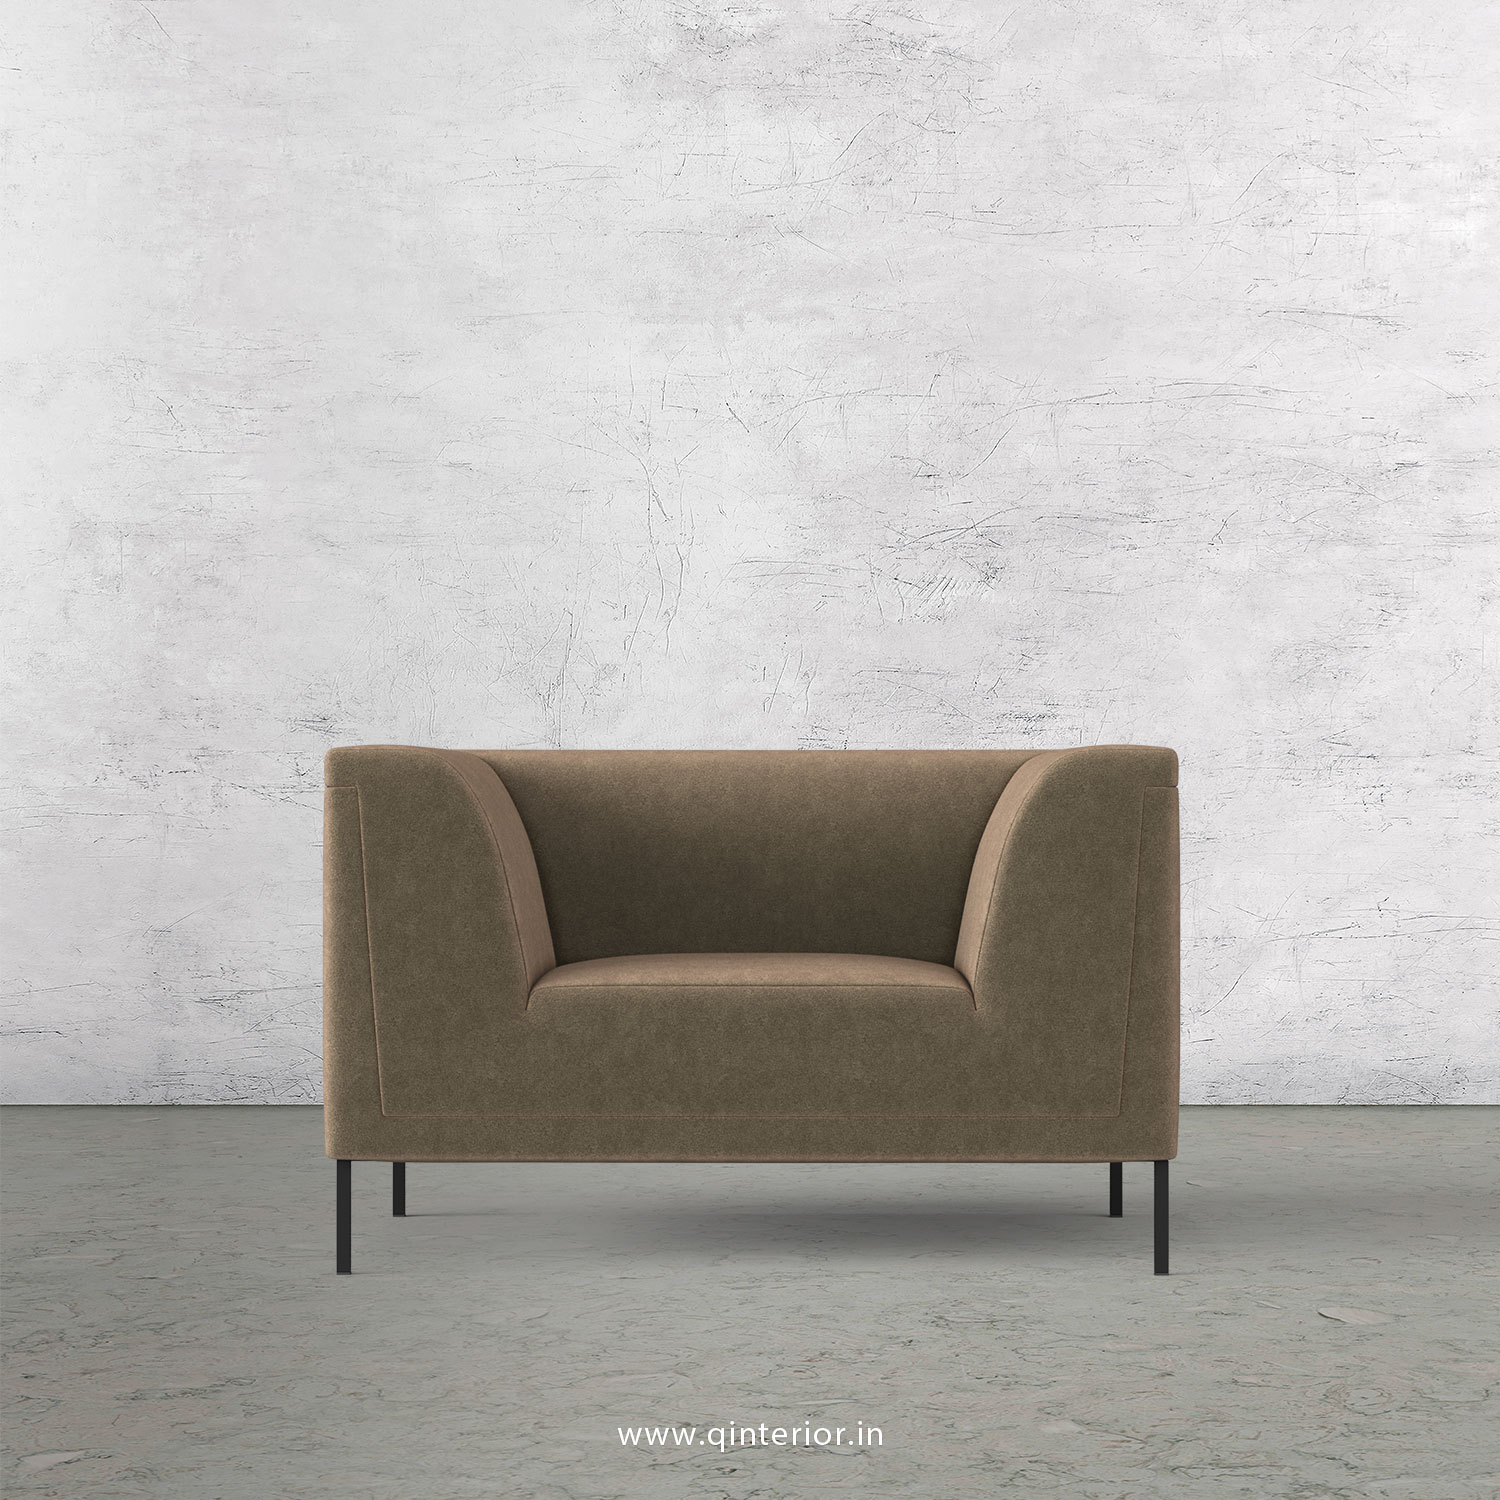 LUXURA 1 Seater Sofa in Velvet Fabric - SFA017 VL03